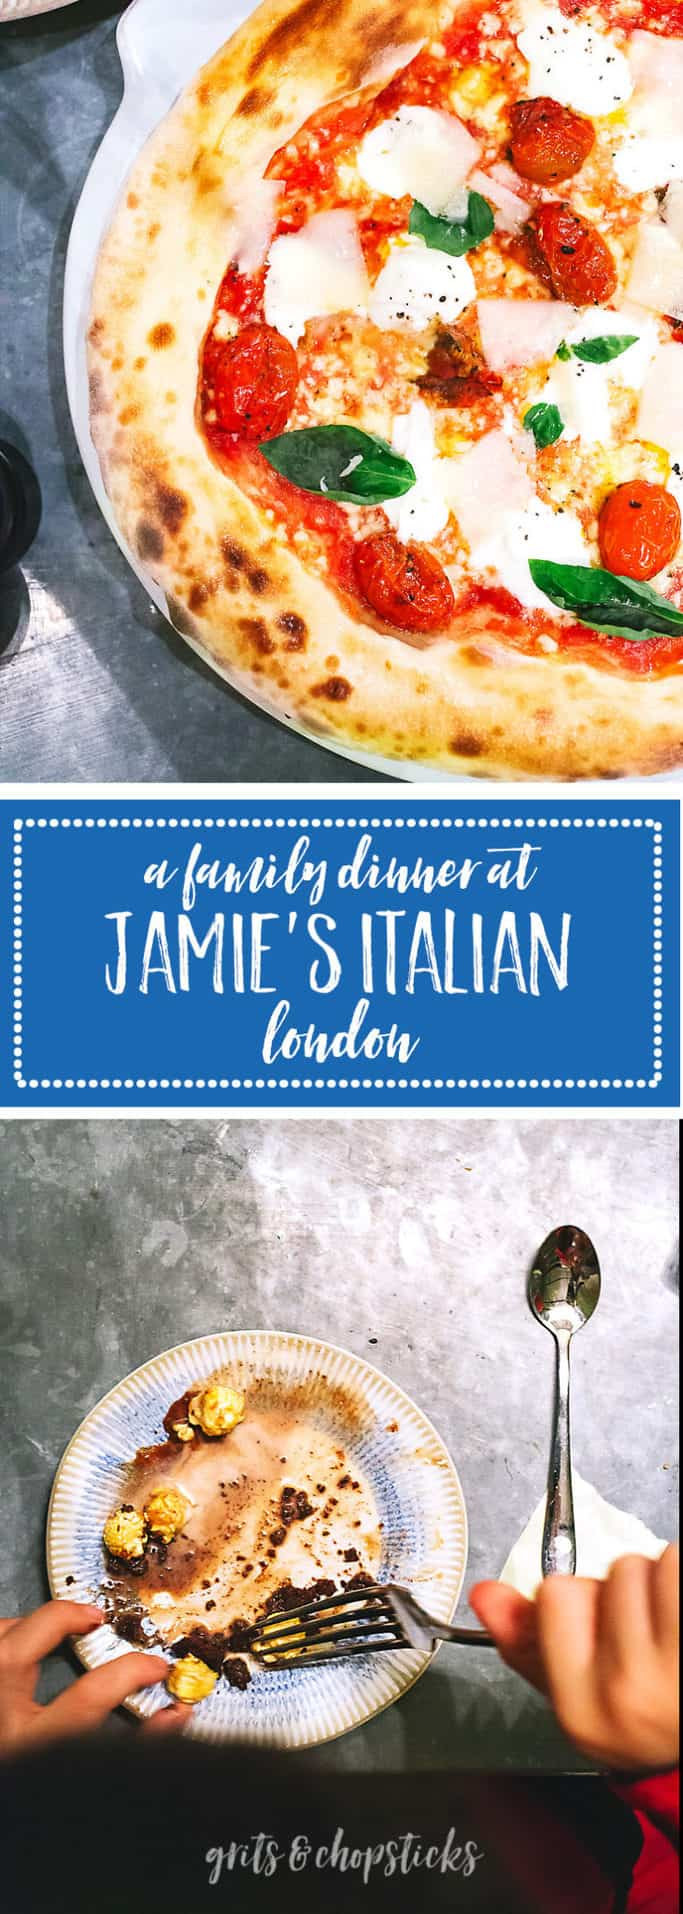 jamie's italian is a great family dinner out - check it out!